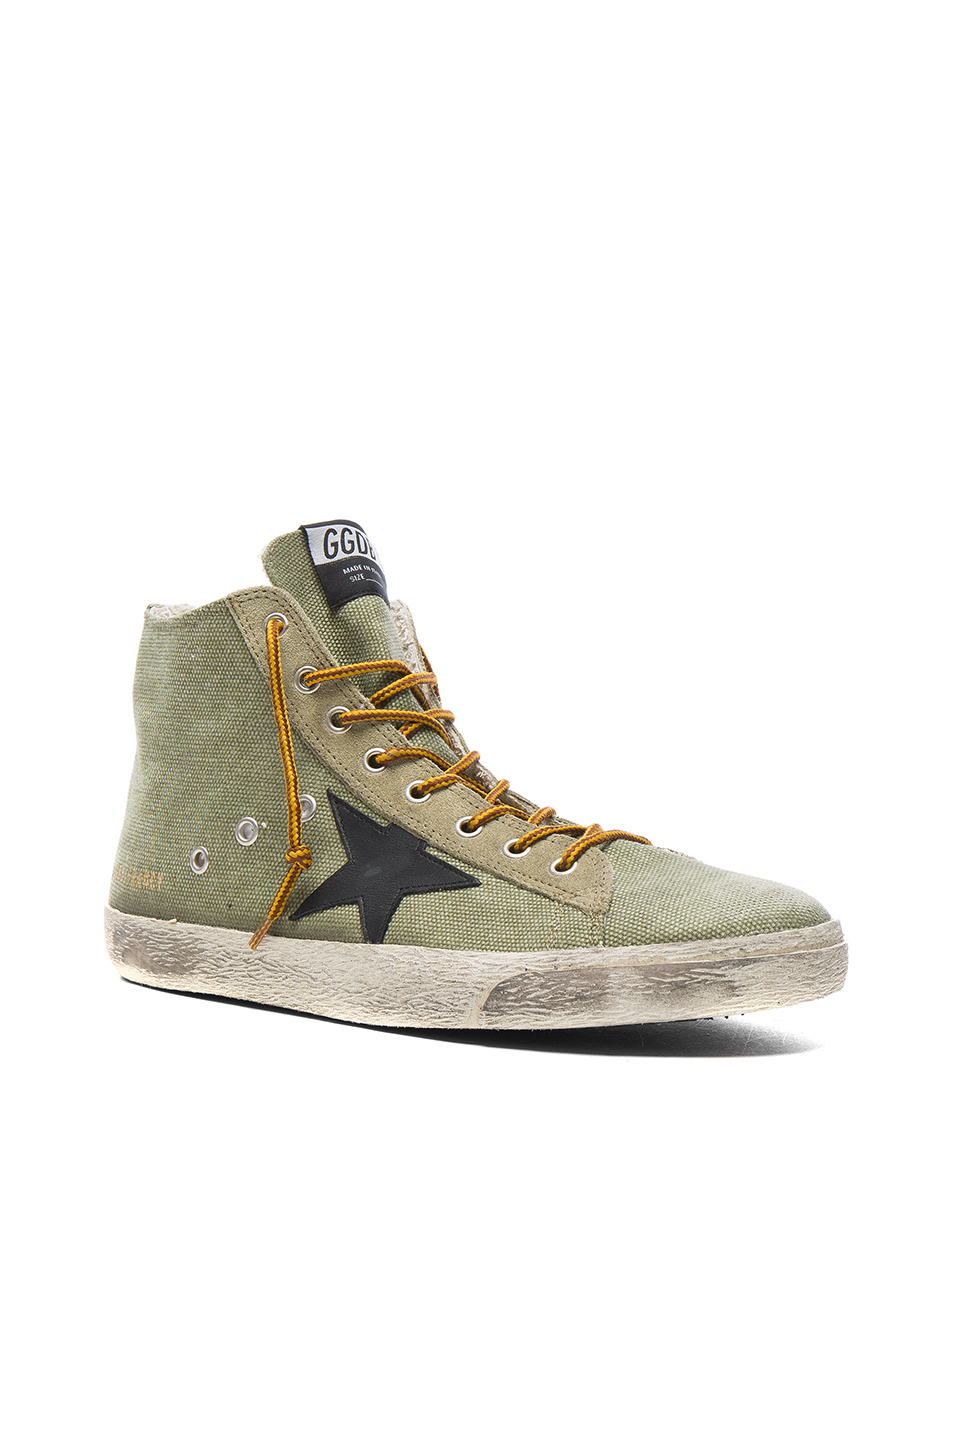 Golden Goose Canvas Francy Sneakers in Green